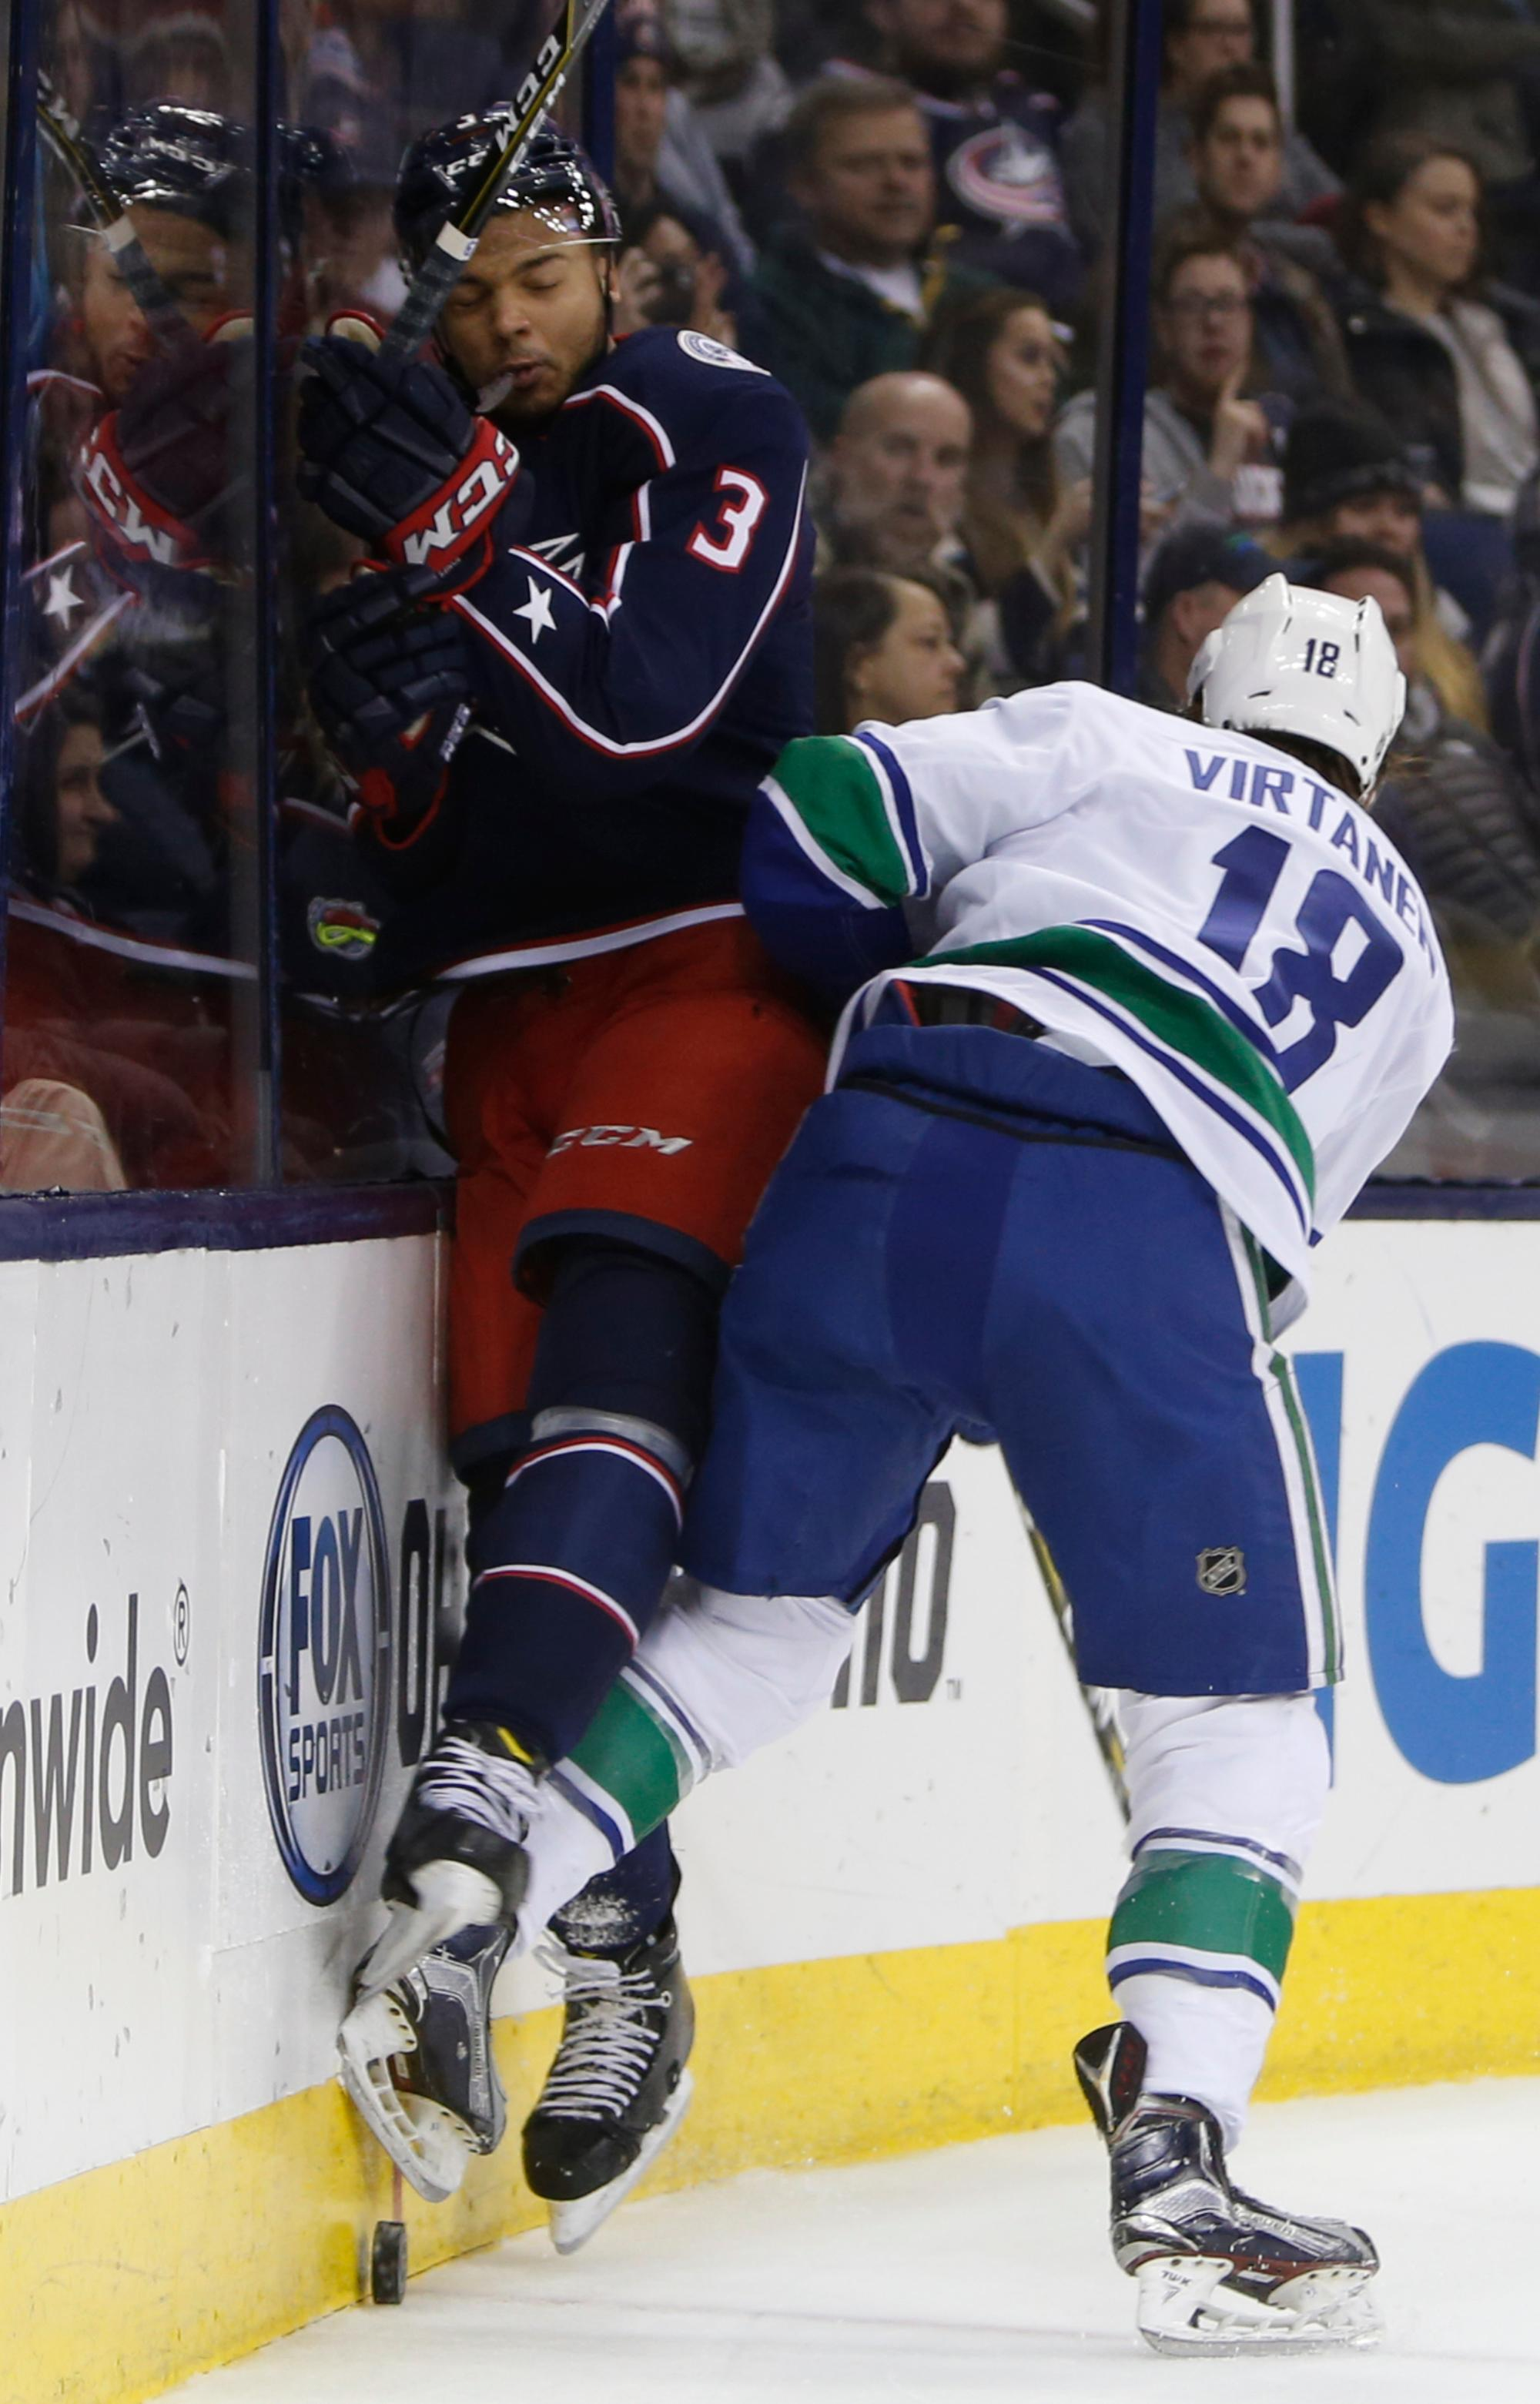 Vancouver Canucks' Jake Virtanen, right, checks Columbus Blue Jackets' Seth Jones during the first period of an NHL hockey game Friday, Jan. 12, 2018, in Columbus, Ohio. (AP Photo/Jay LaPrete)